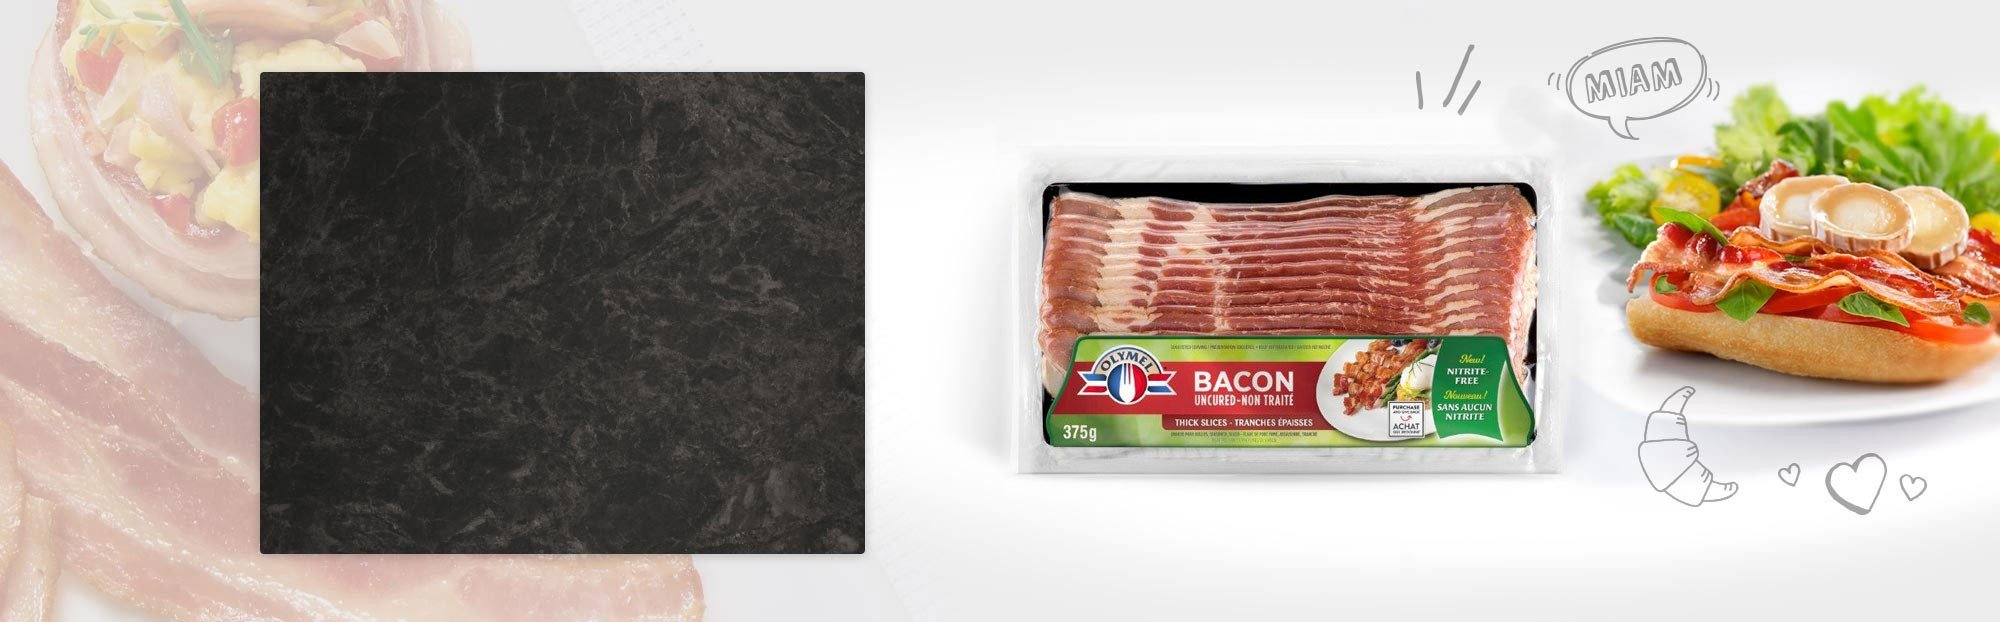 Bacon Non traité